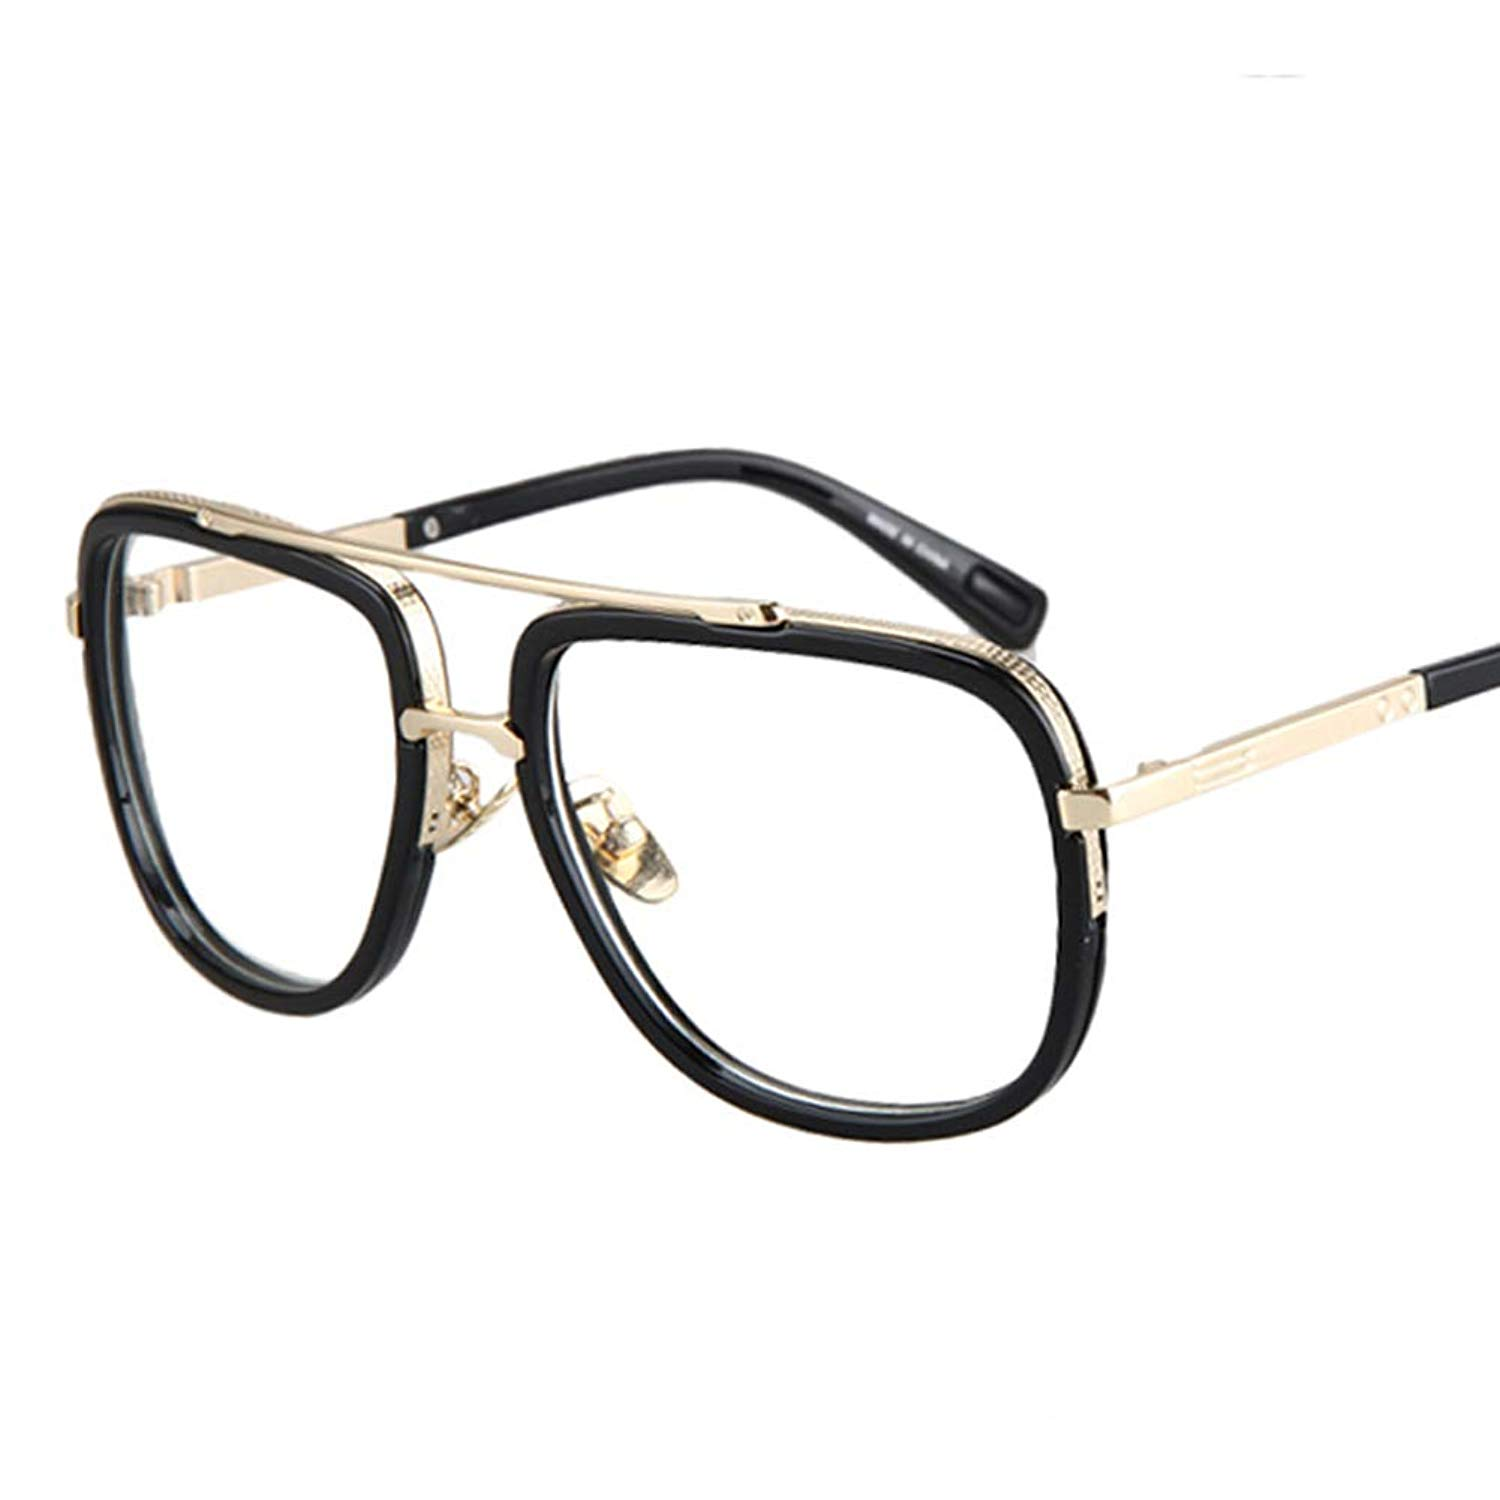 22989b5744 Get Quotations · Square Frame Glasses Male Half Metal Frame Clear Lens  Retro Eyeglasses Women